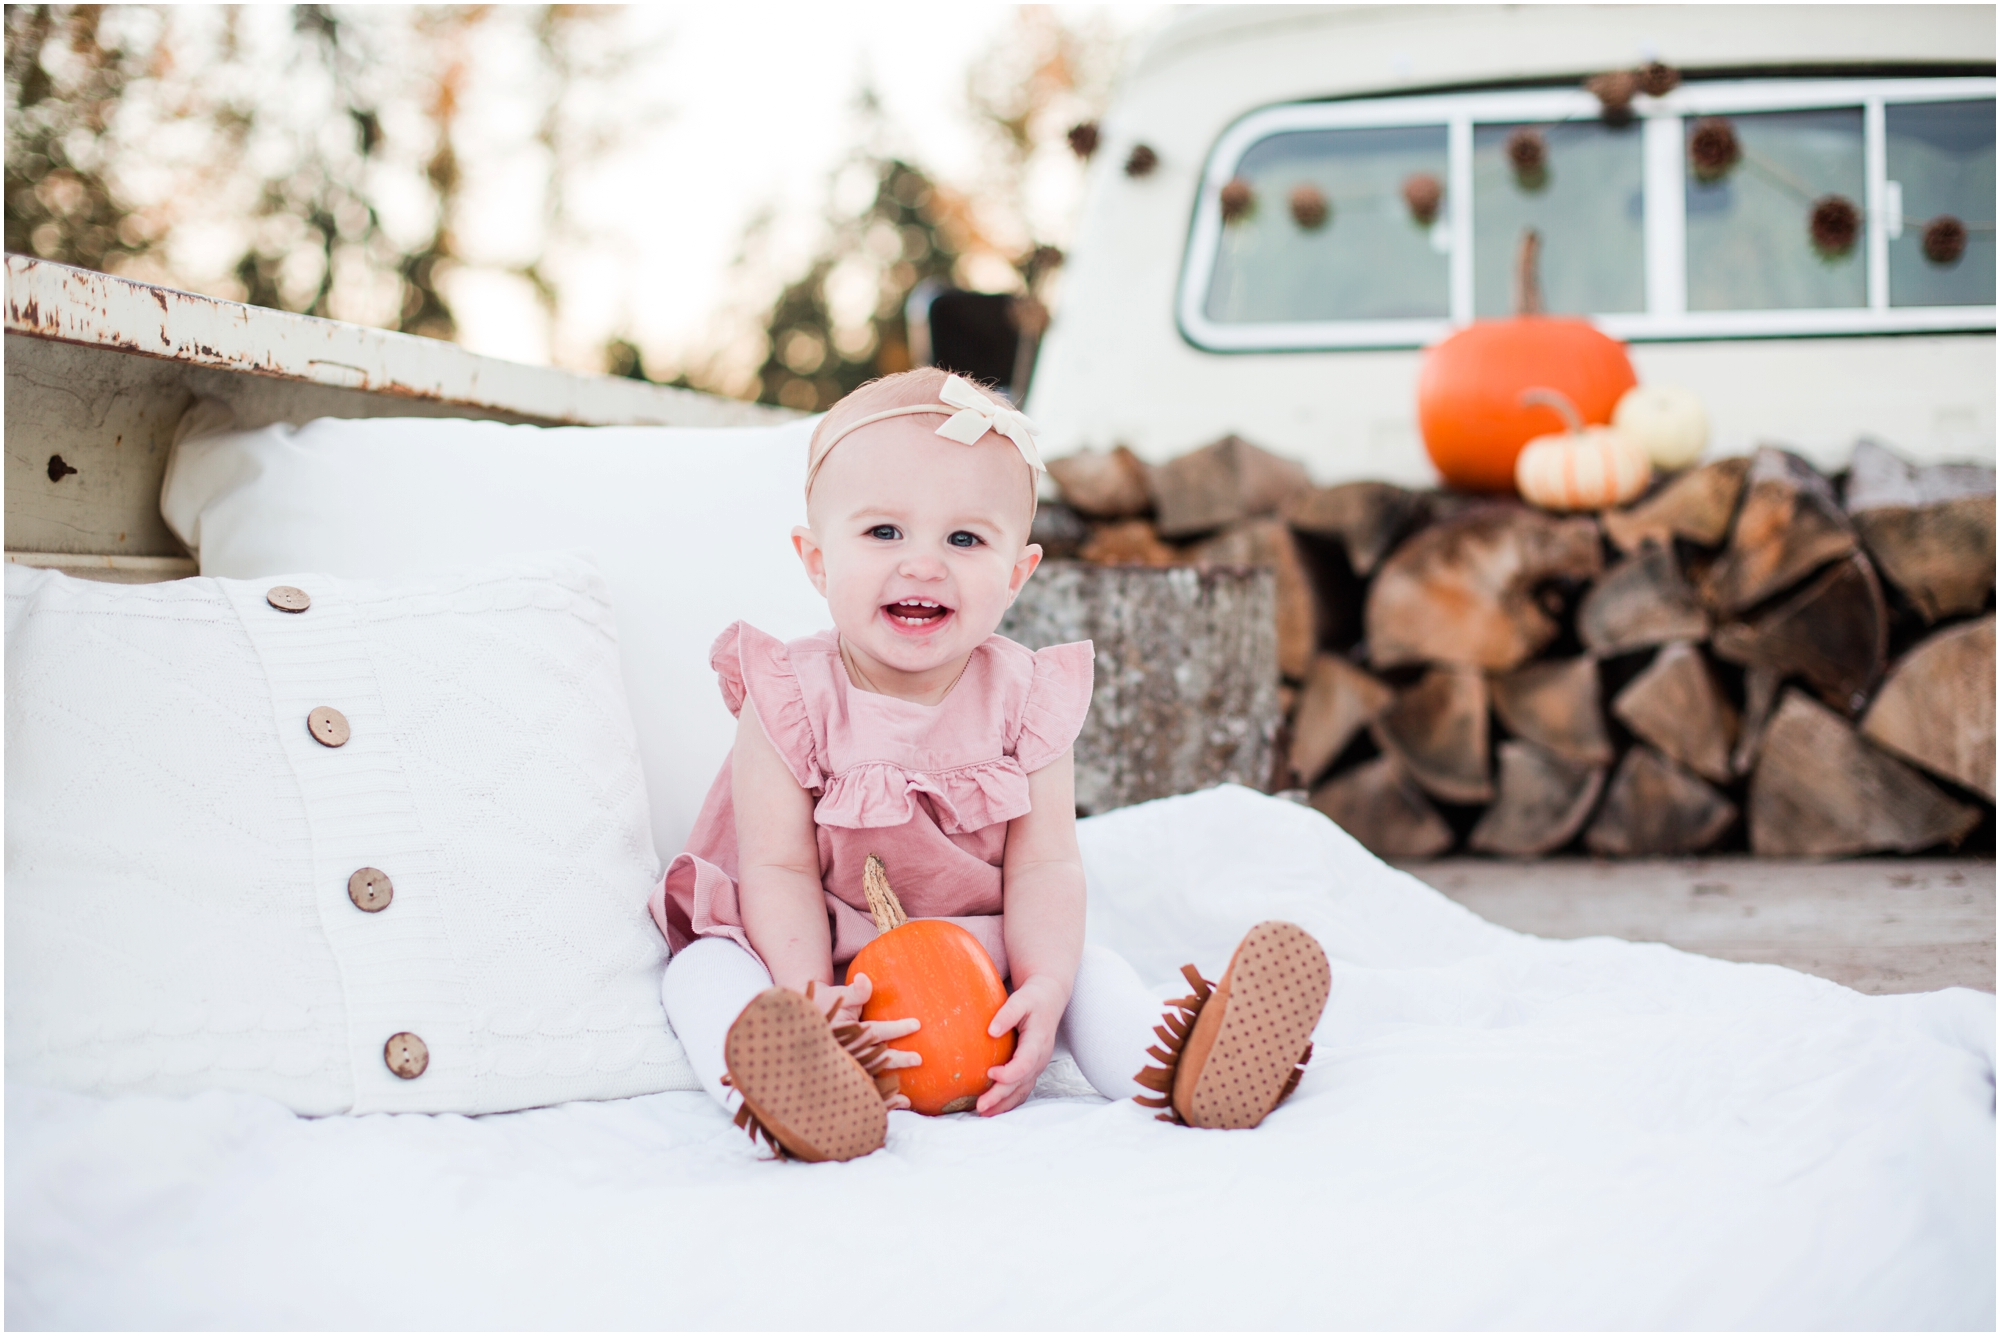 One Year old portriats by Briana Calderon Photography based in the Greater Seattle & Tacoma, WA_0966.jpg